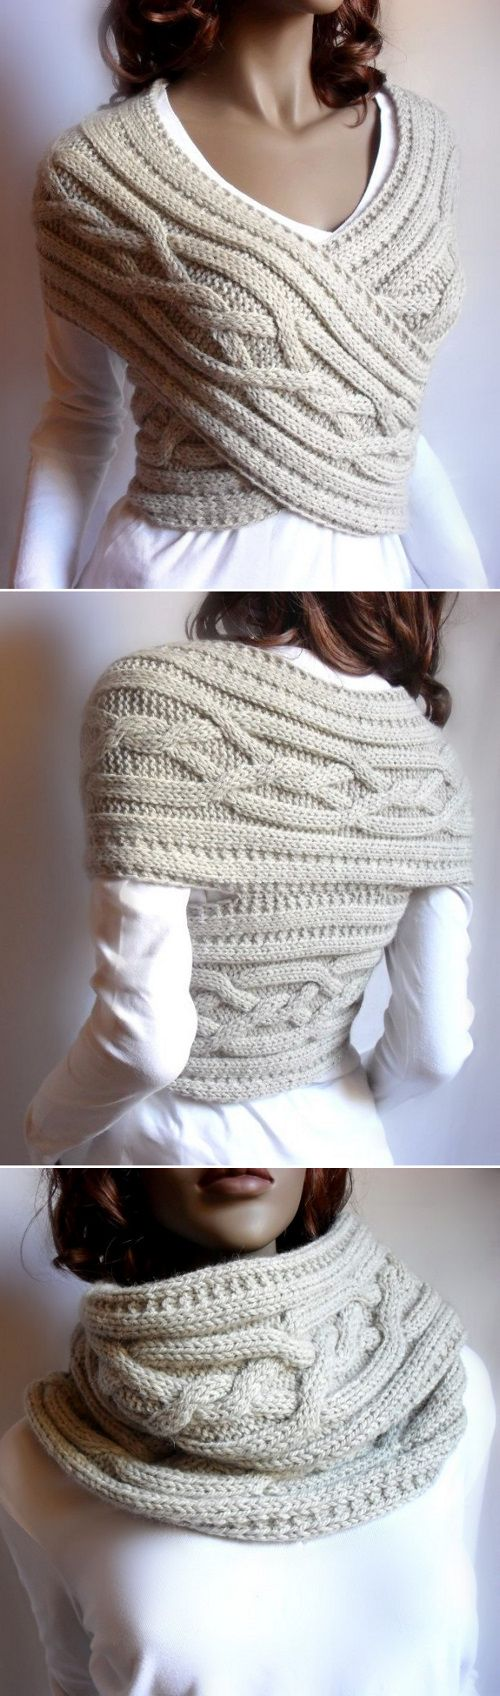 Knitting Pattern Cabled Sweater Pattern Cowl Vest Sweater Vest PDF ...